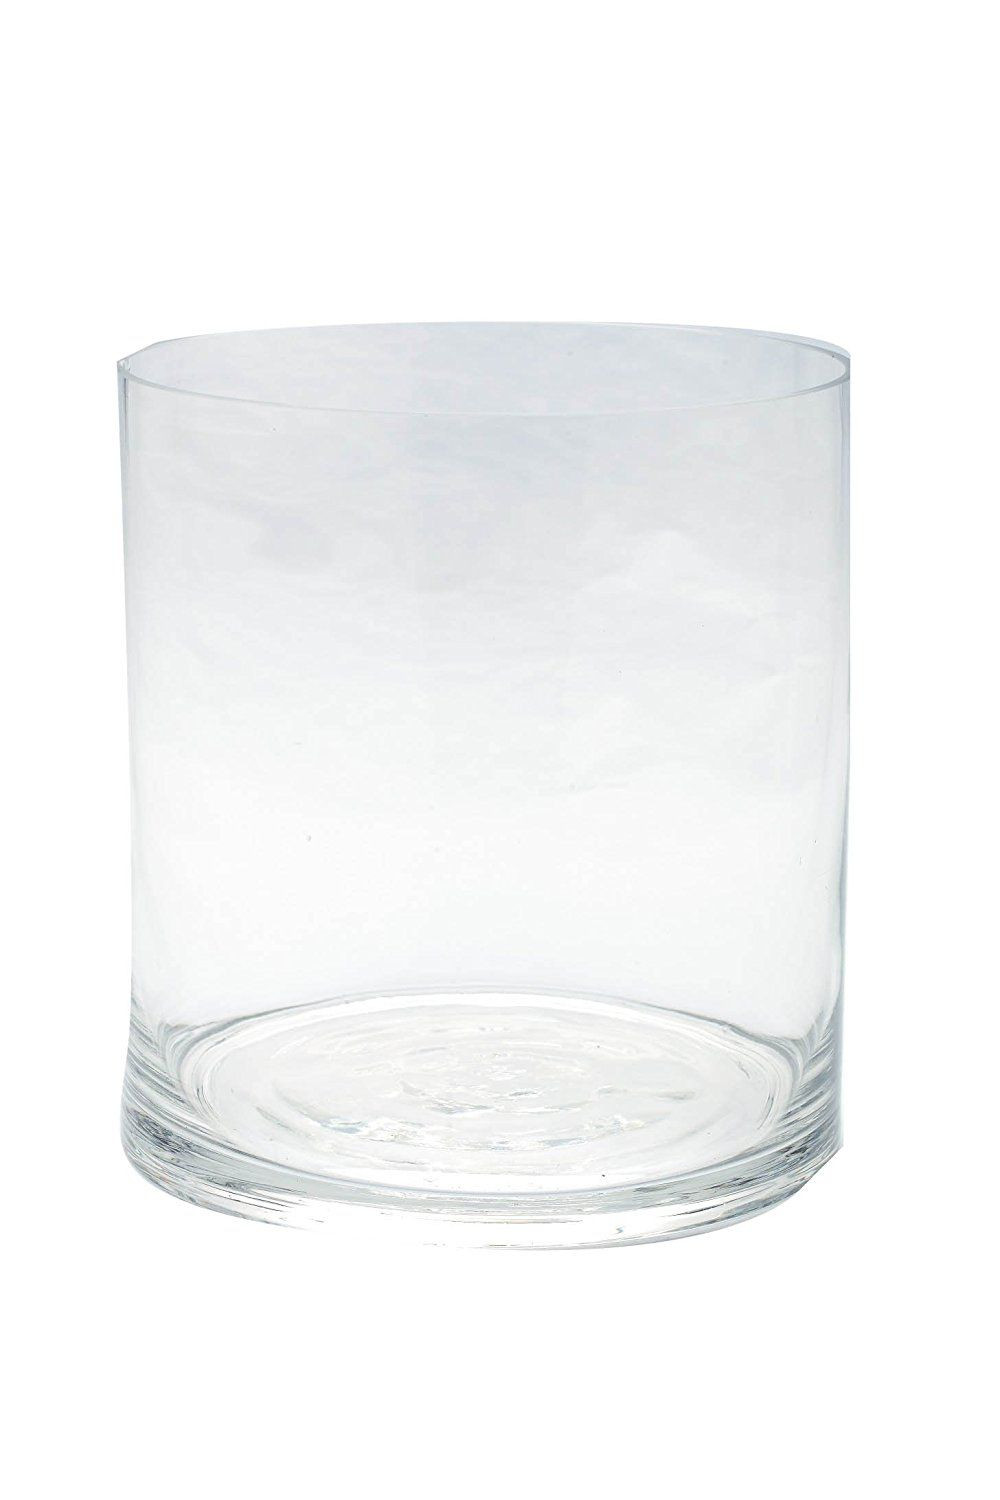 cylindrical glass vase of diamond star glass 84010c clear cylinder 9 by 10 want pertaining to diamond star glass 84010c clear cylinder 9 by 10 want